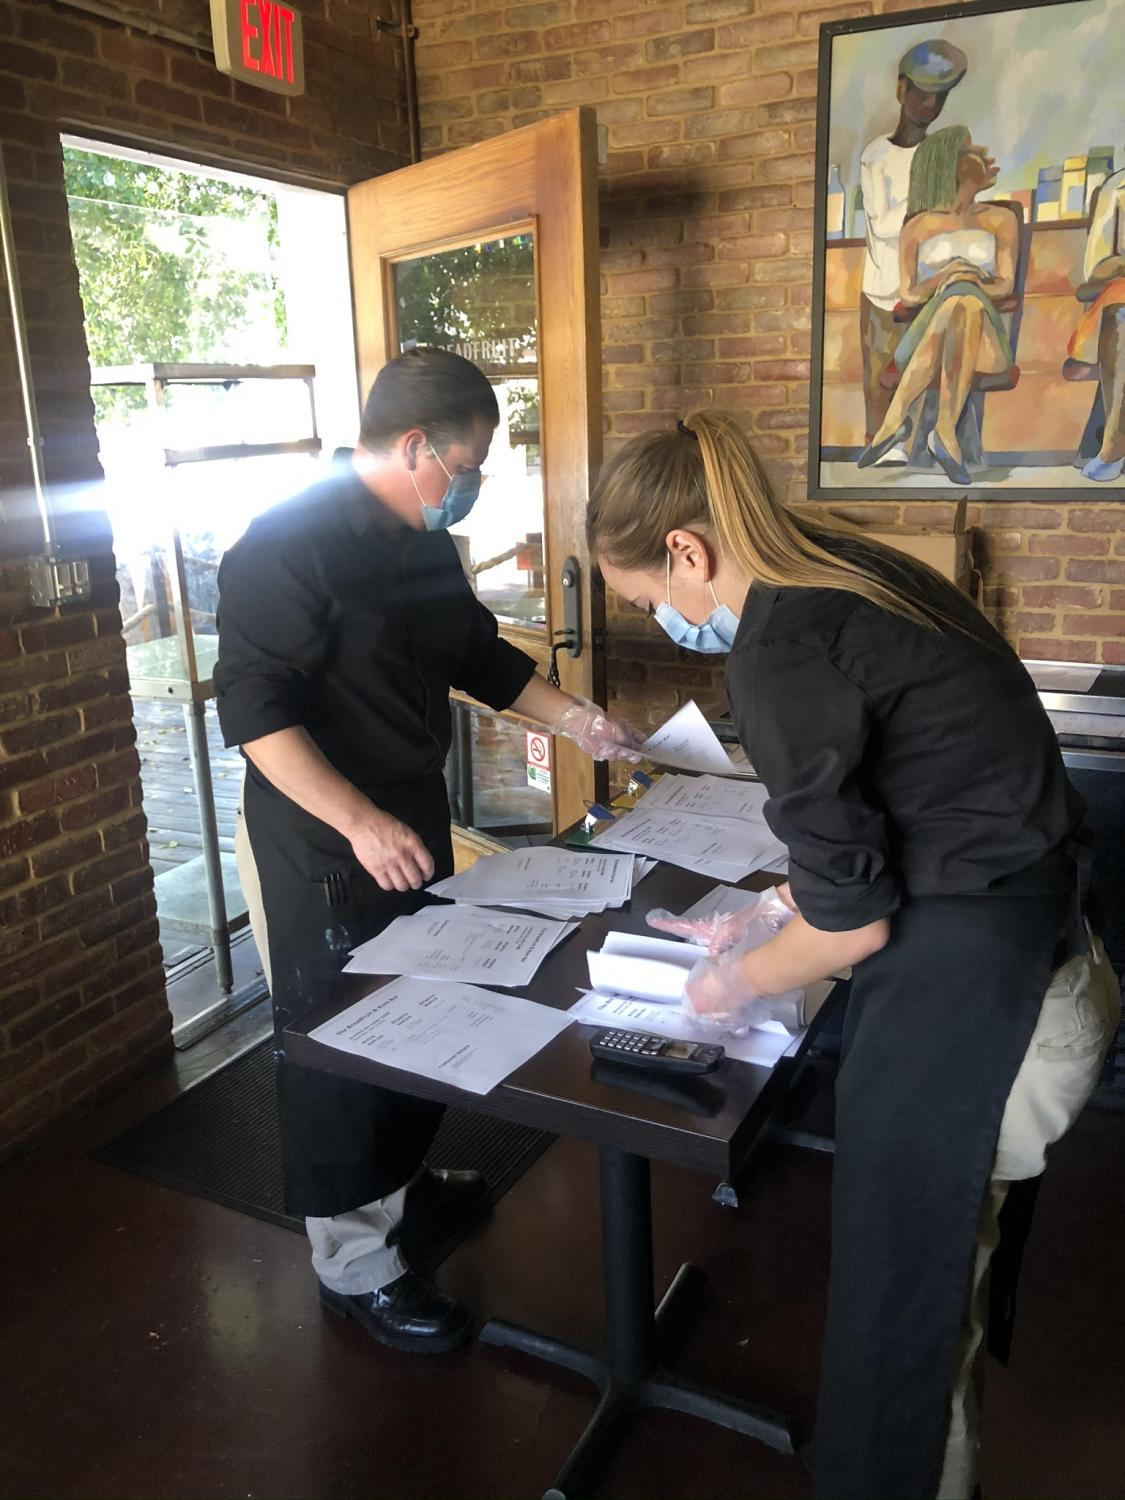 employees setting up table for takeout orders